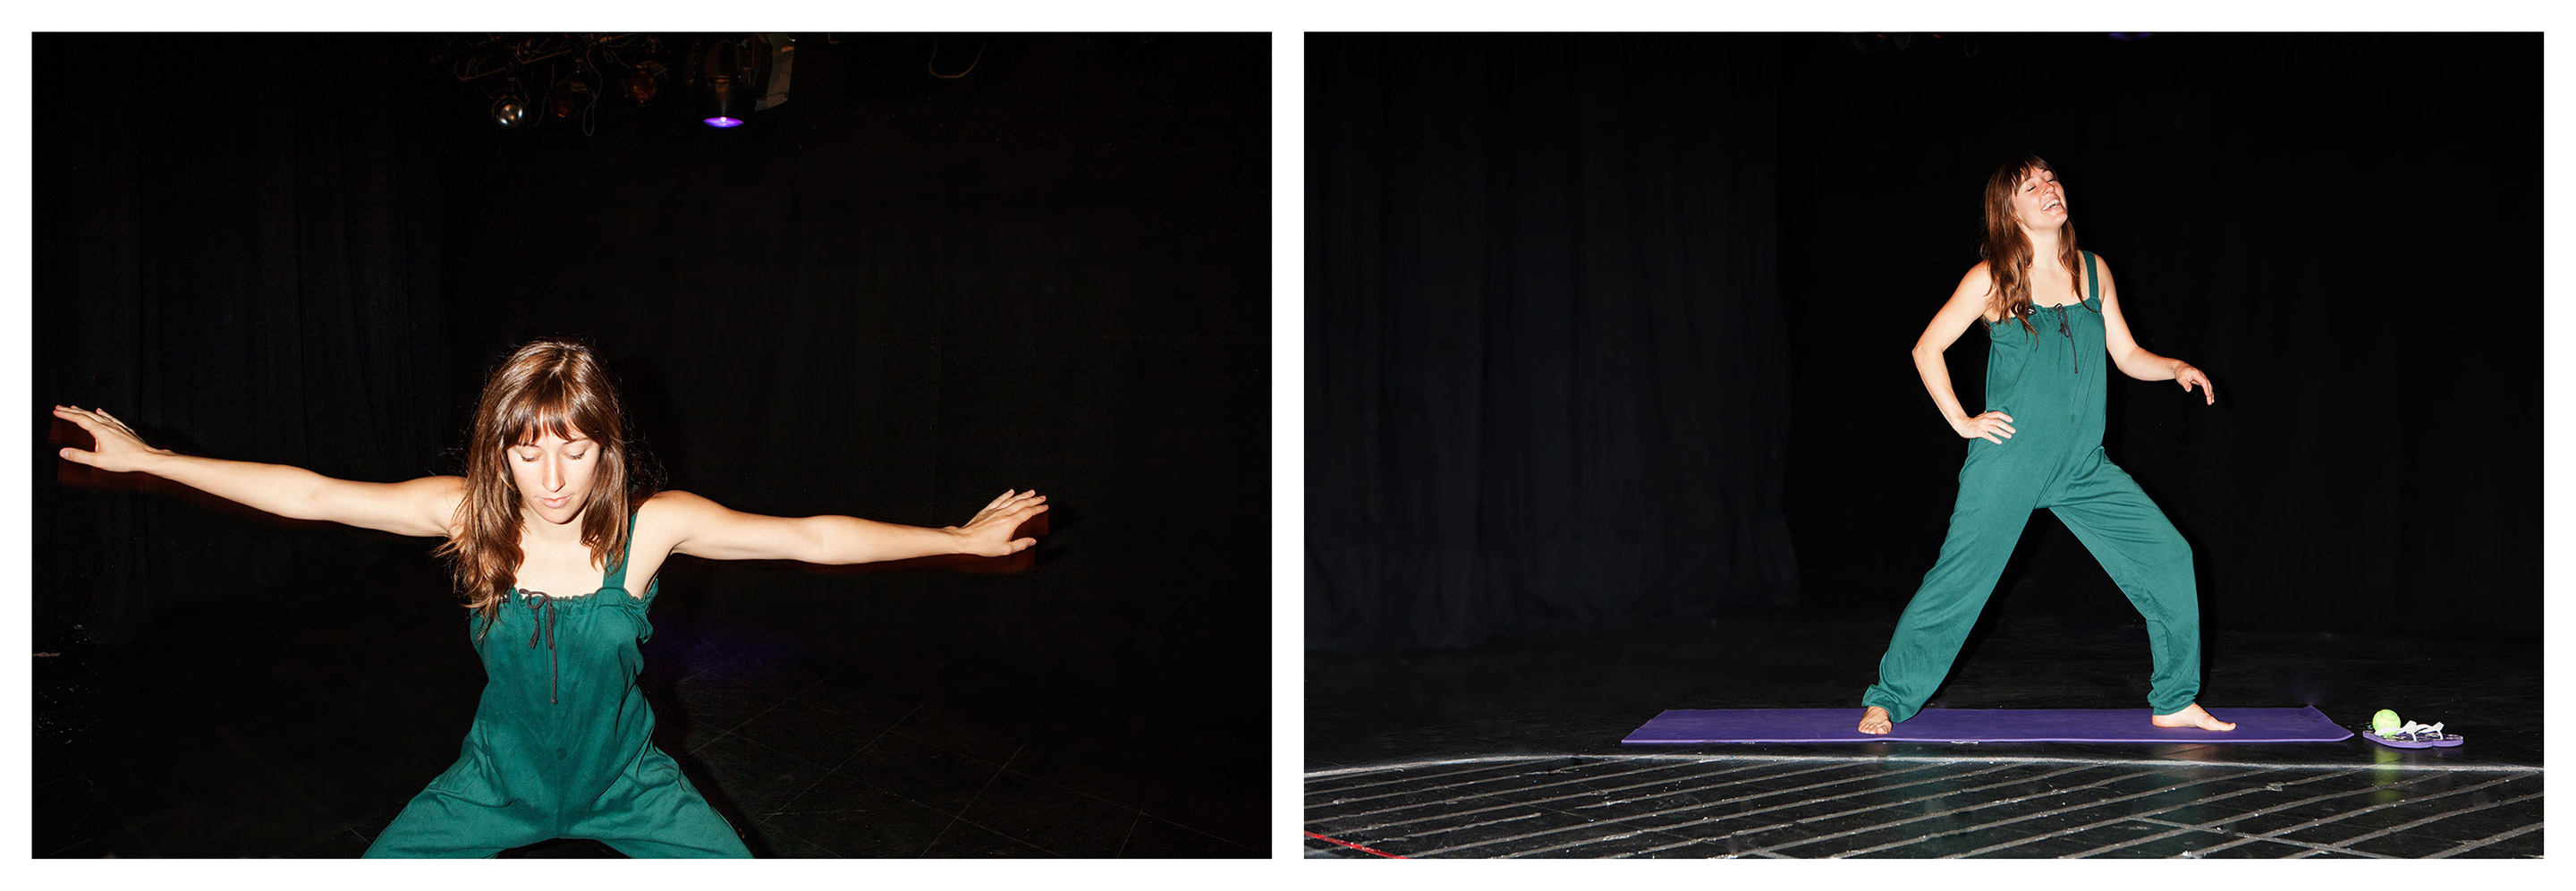 5-_MG_1583Diptych